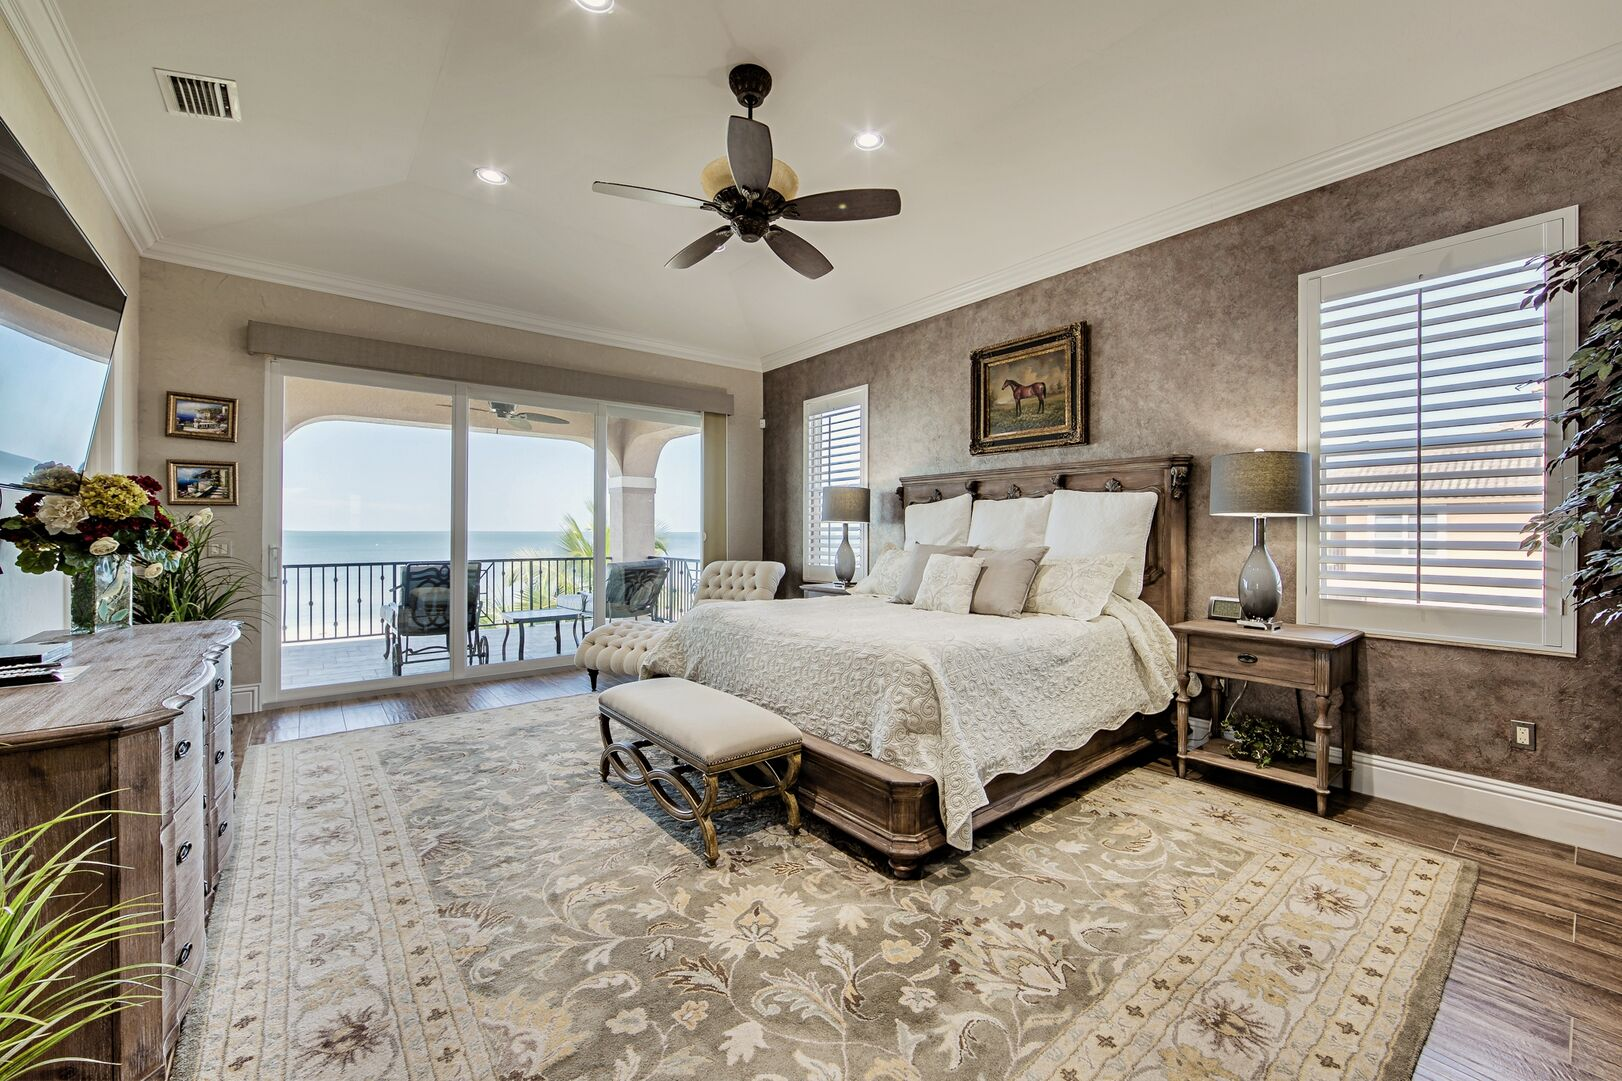 Large Bed, Nightstands, Bench, Ceiling Fan, and the Sliding Doors to the Balcony.